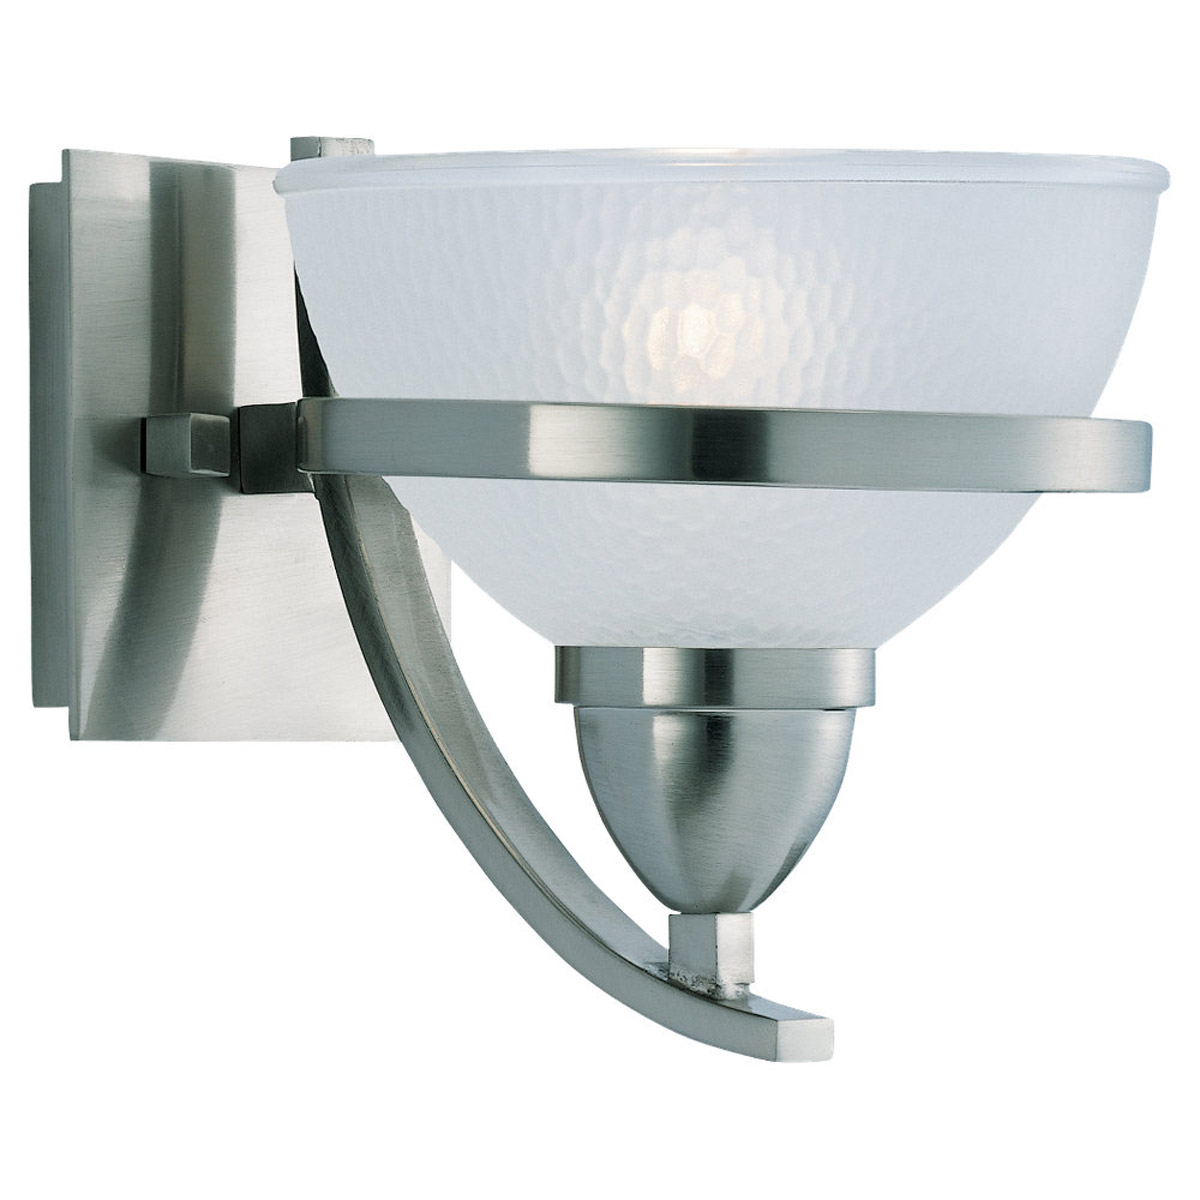 Sea Gull Lighting Eternity 1 Light Bath Vanity in Brushed Nickel 44115-962 photo